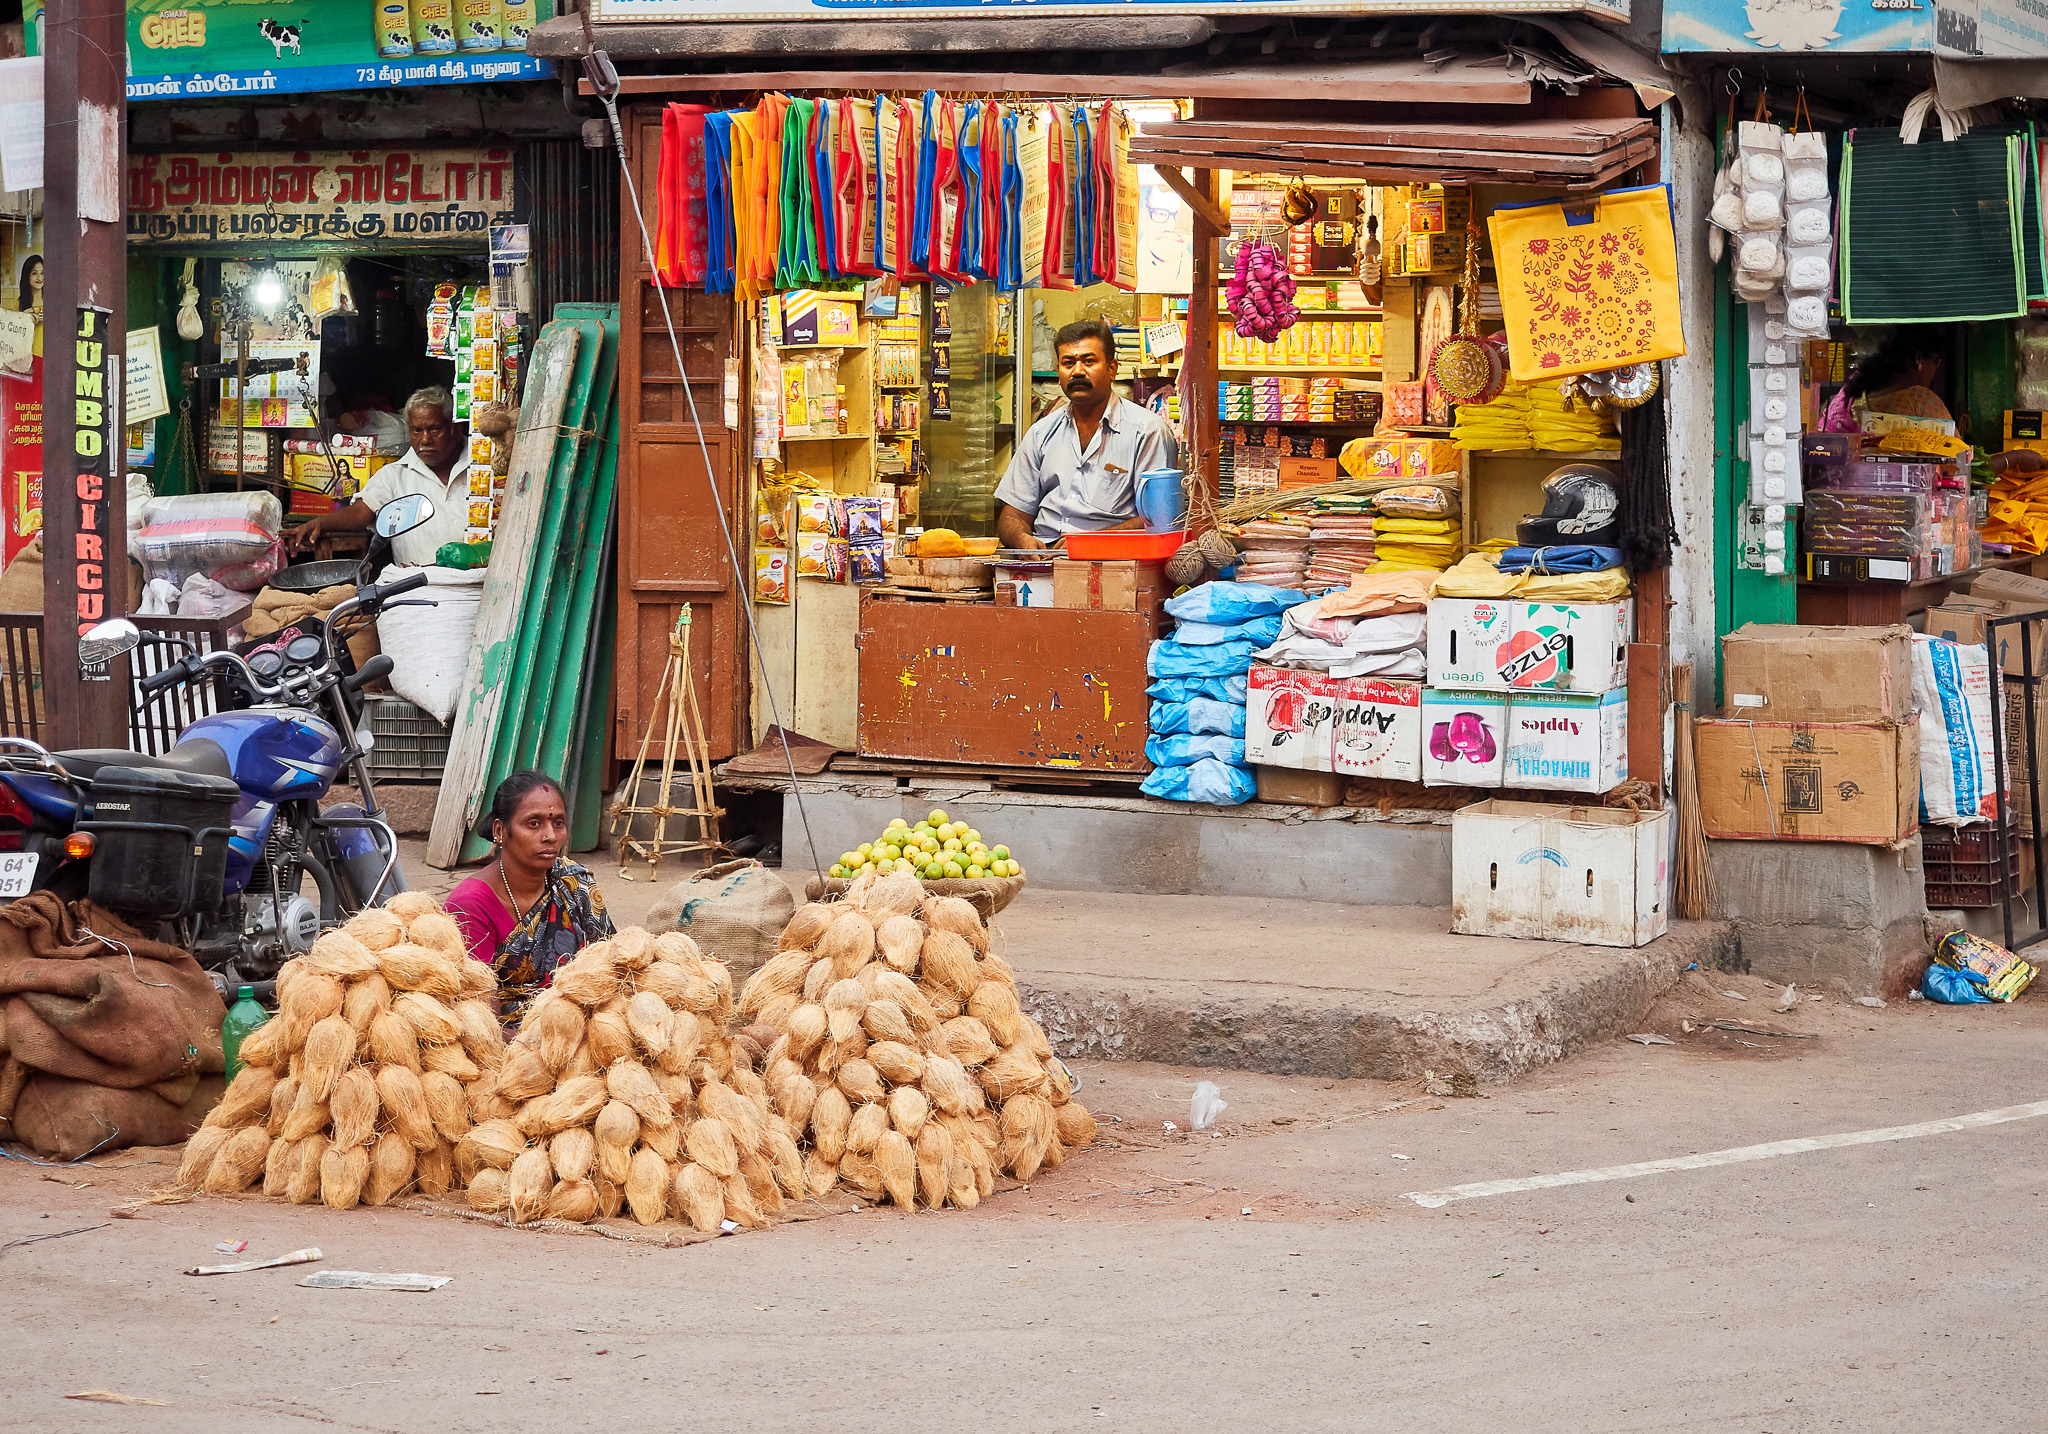 A woman coconut seller and shopkeepers at the East Masi Street market, Madurai, Tamil Nadu, India